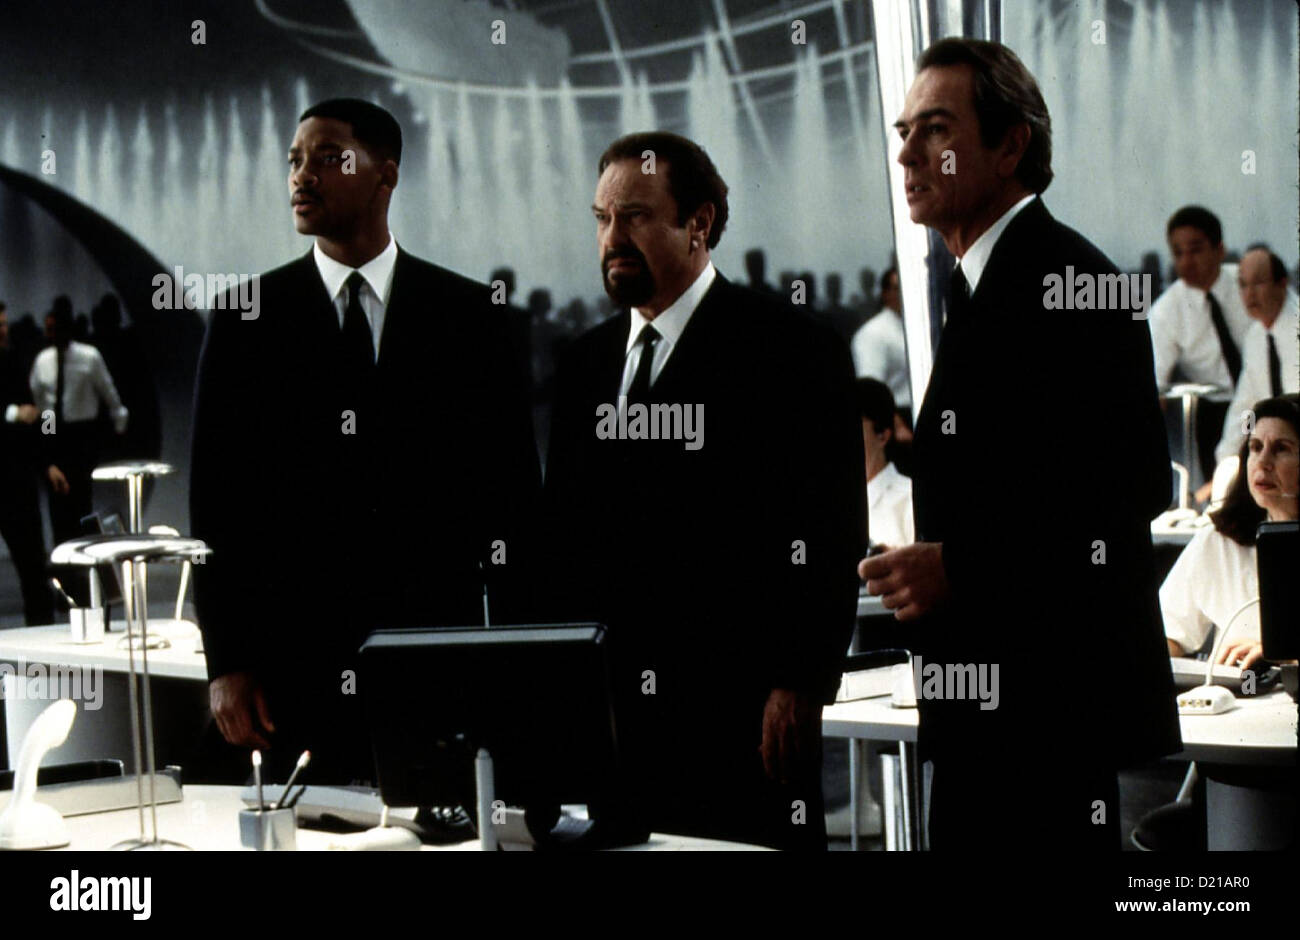 Men In Black Men In Black Agent J Will Smith Agent Z Rip